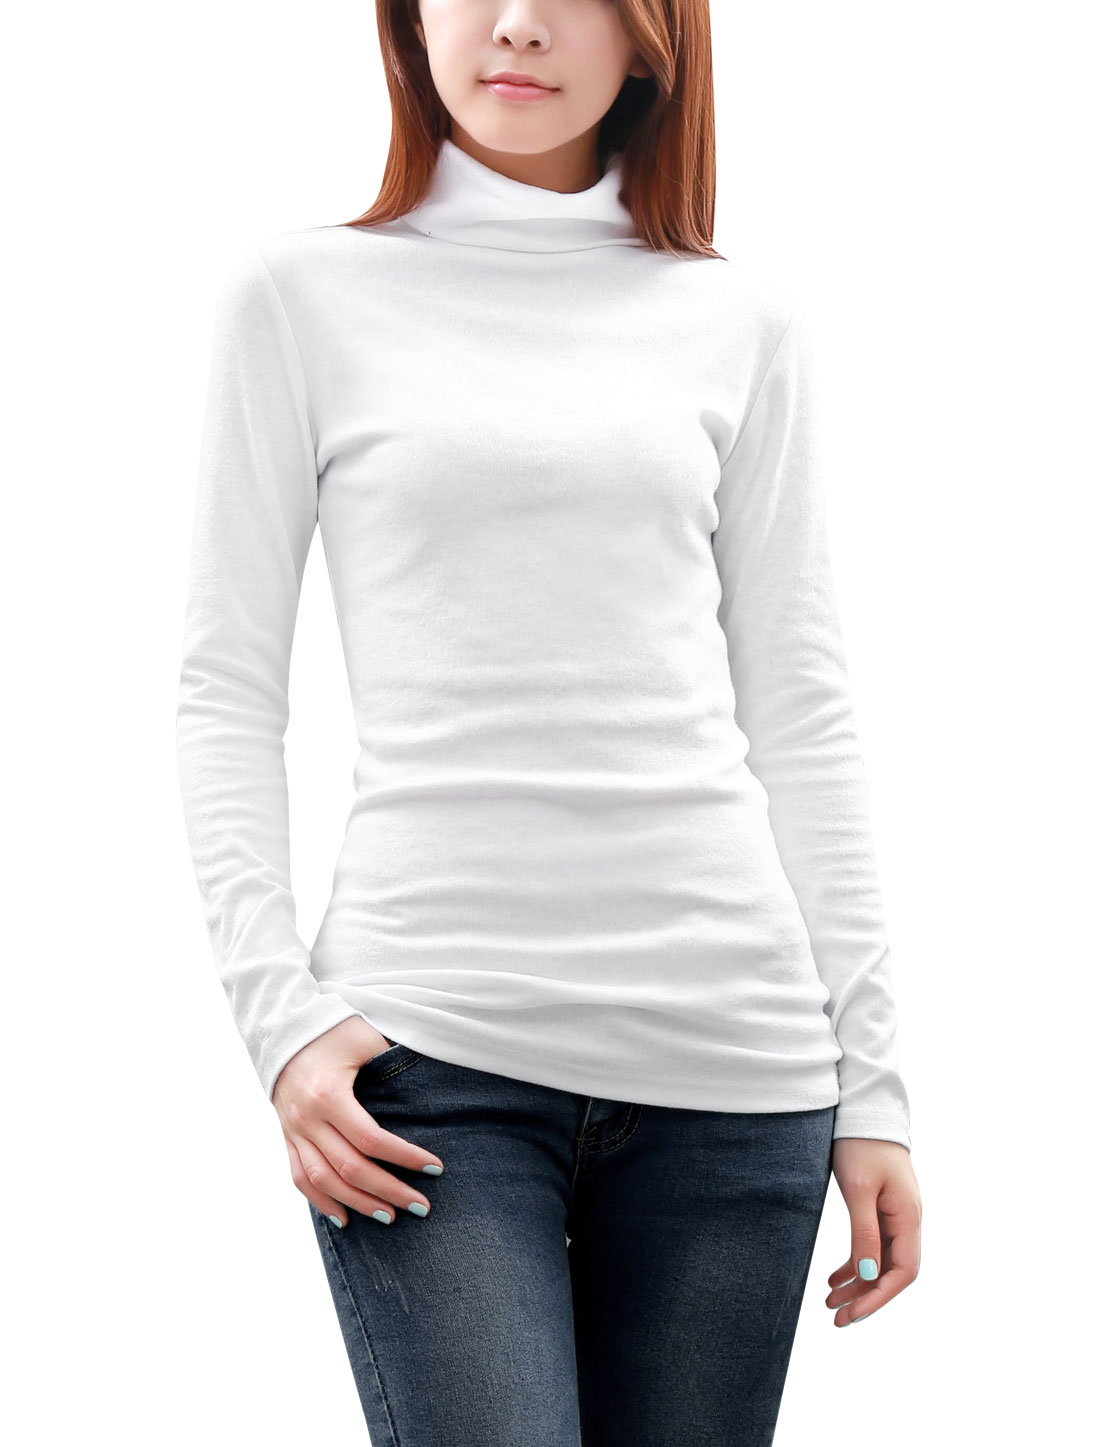 Women Slim Fit Long Sleeve Turtle Neck Soft Rib Knit Top White S